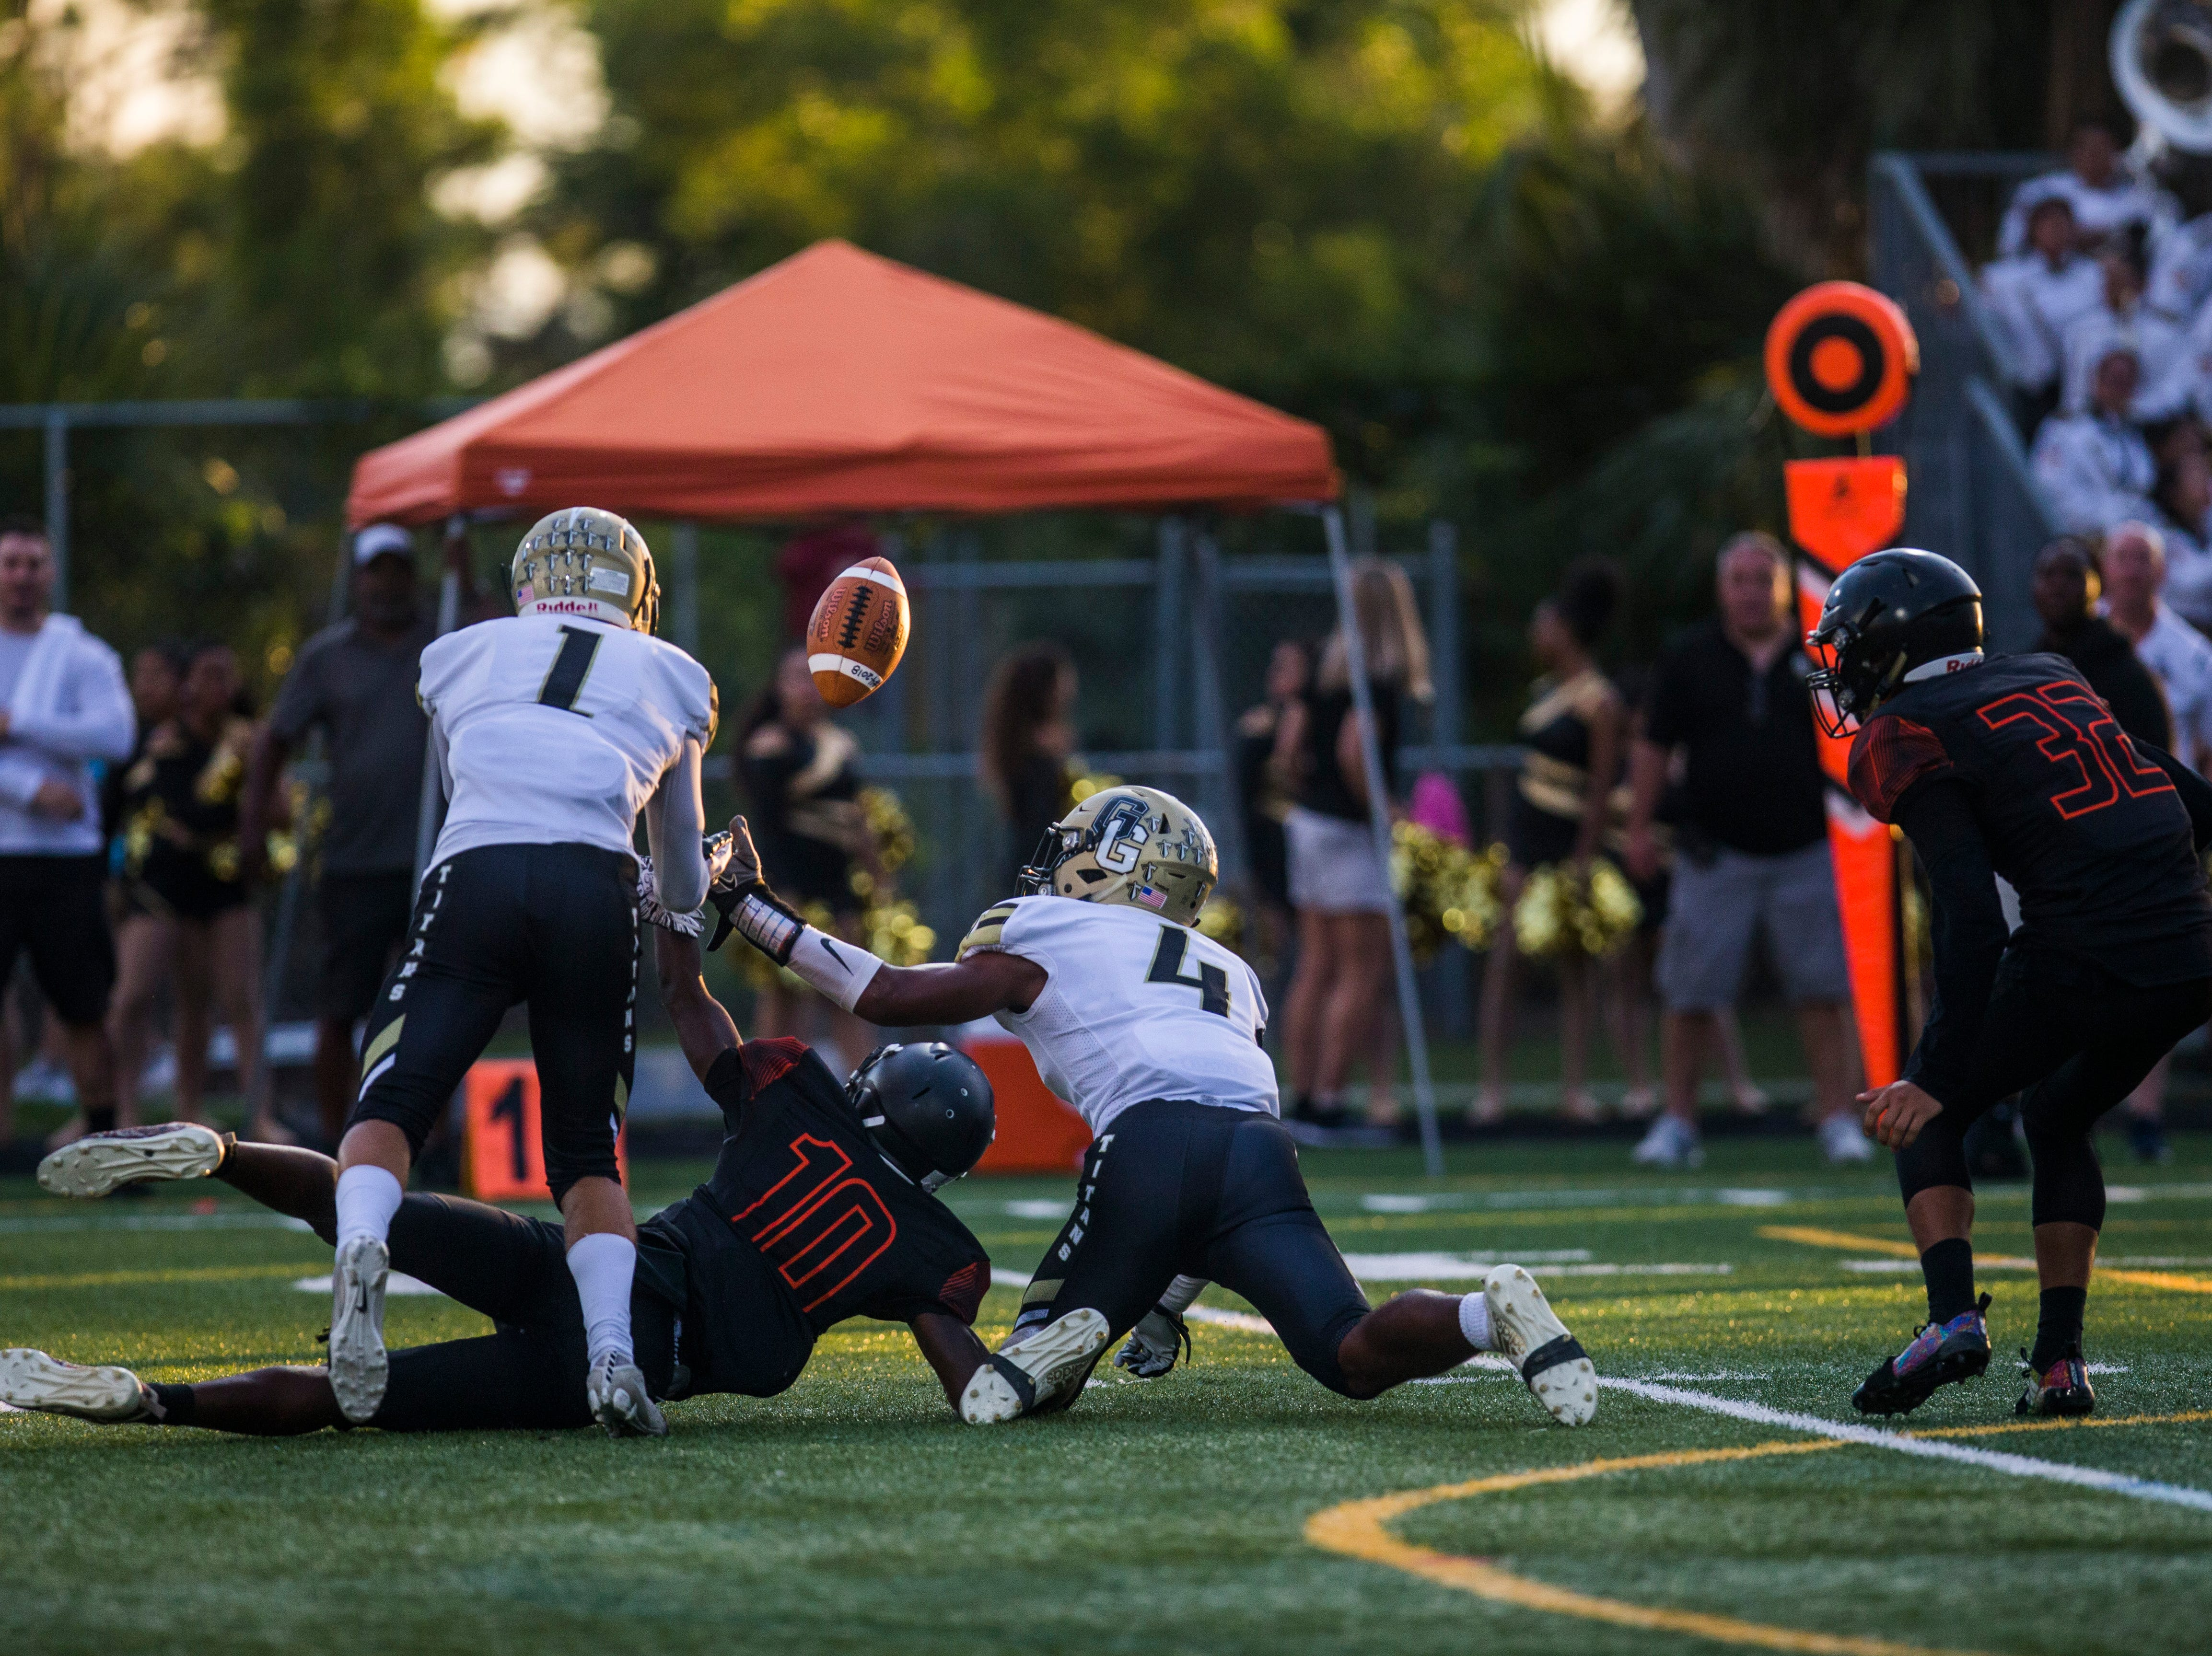 The ball is fumbled during the game between Lely and Golden Gate at Lely High School on Friday, Sept. 7, 2018.